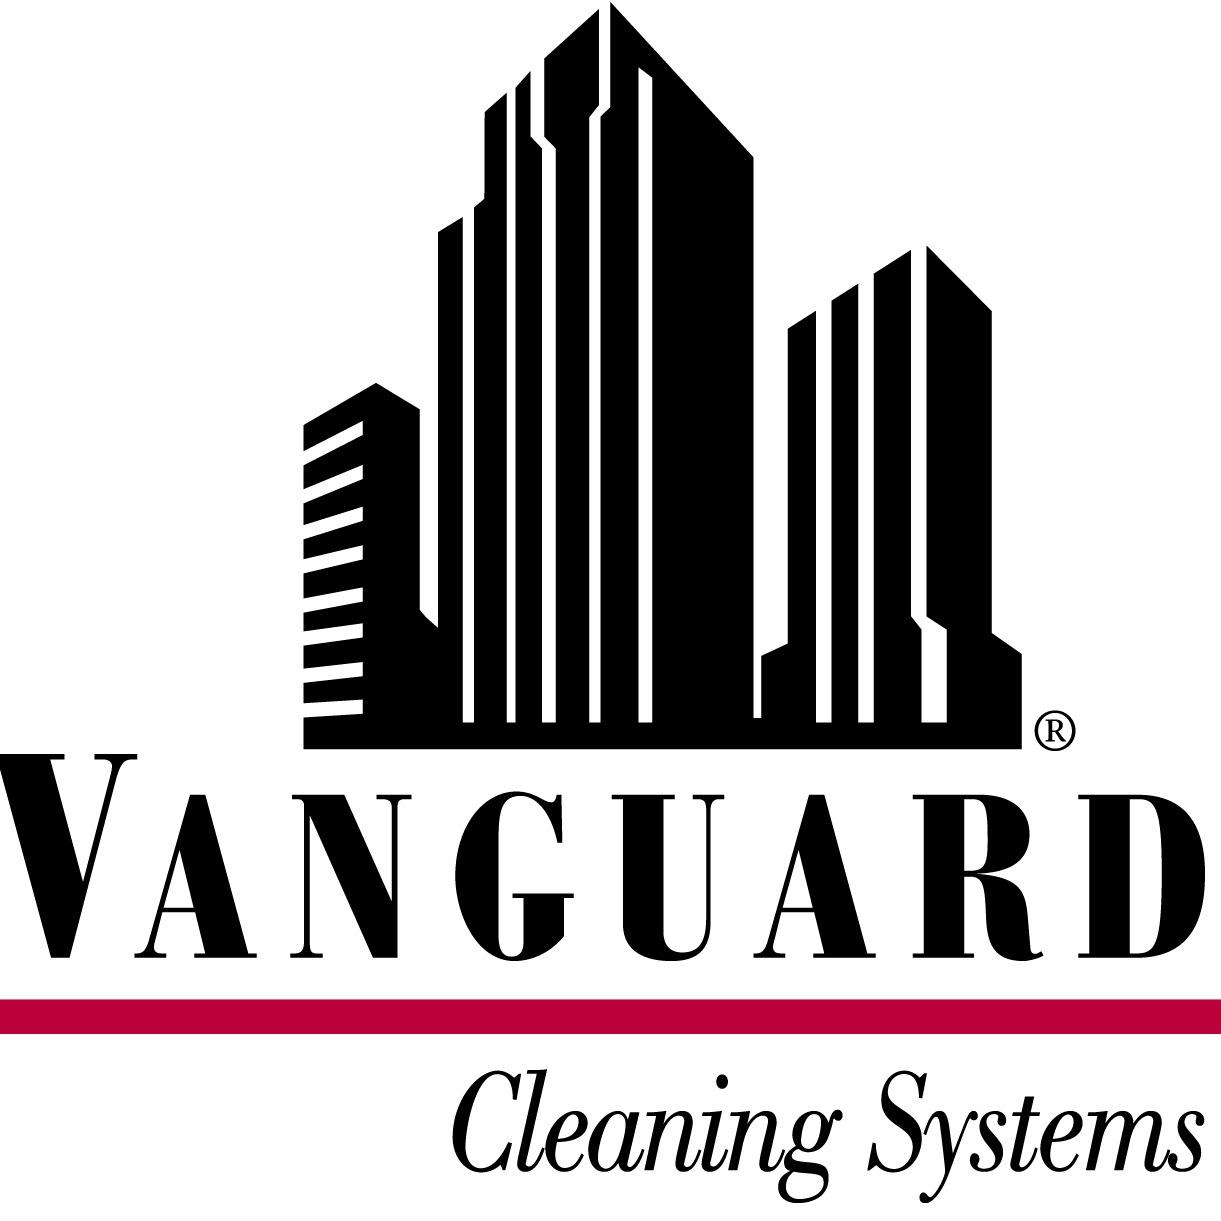 Vanguard Cleaning Systems of Minnesota